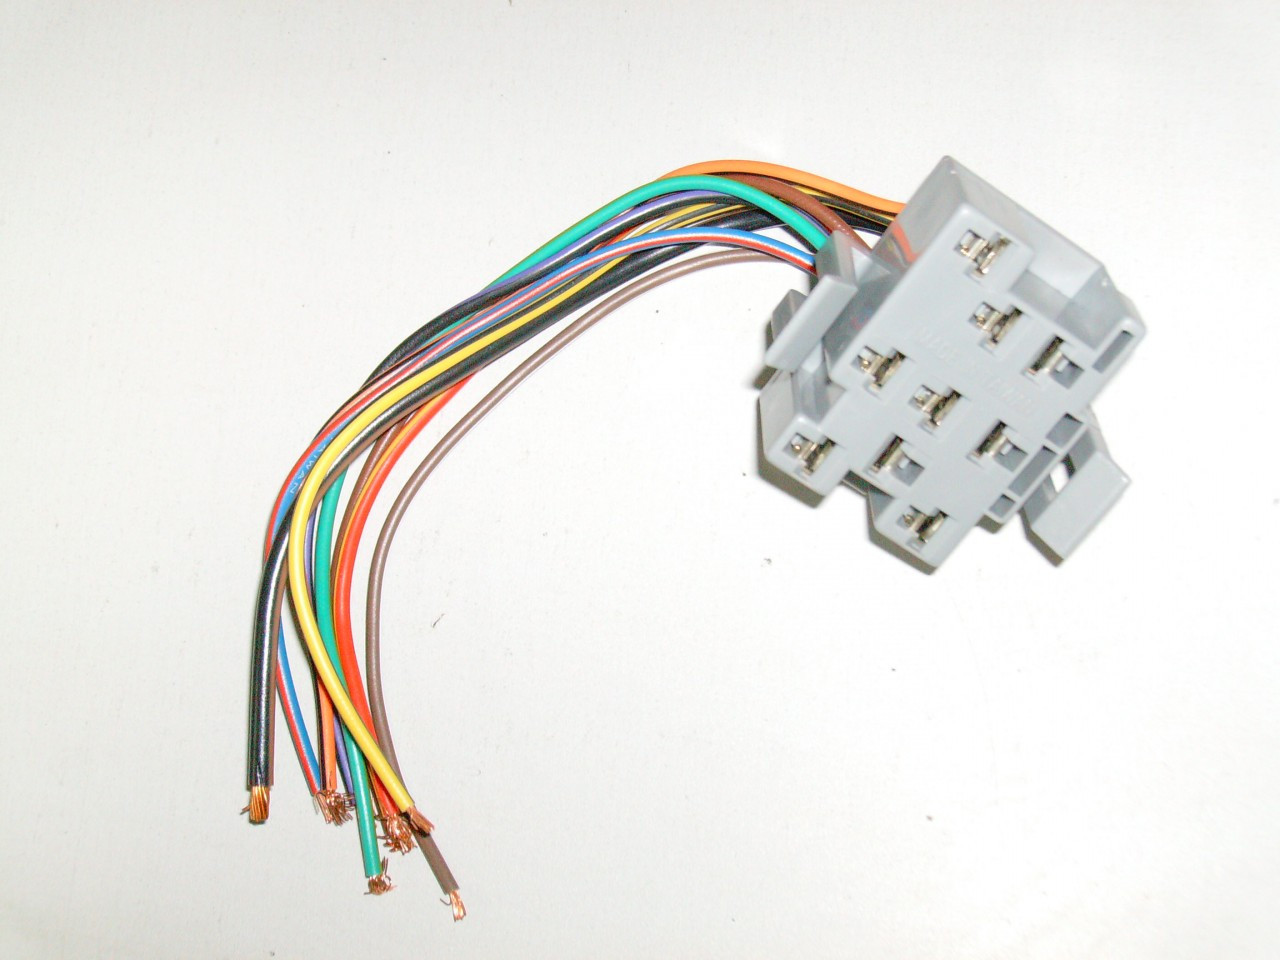 small resolution of 1994 1998 ford mustang headlight switch plug wire harness socket gt lx cobra price 25 98 image 1